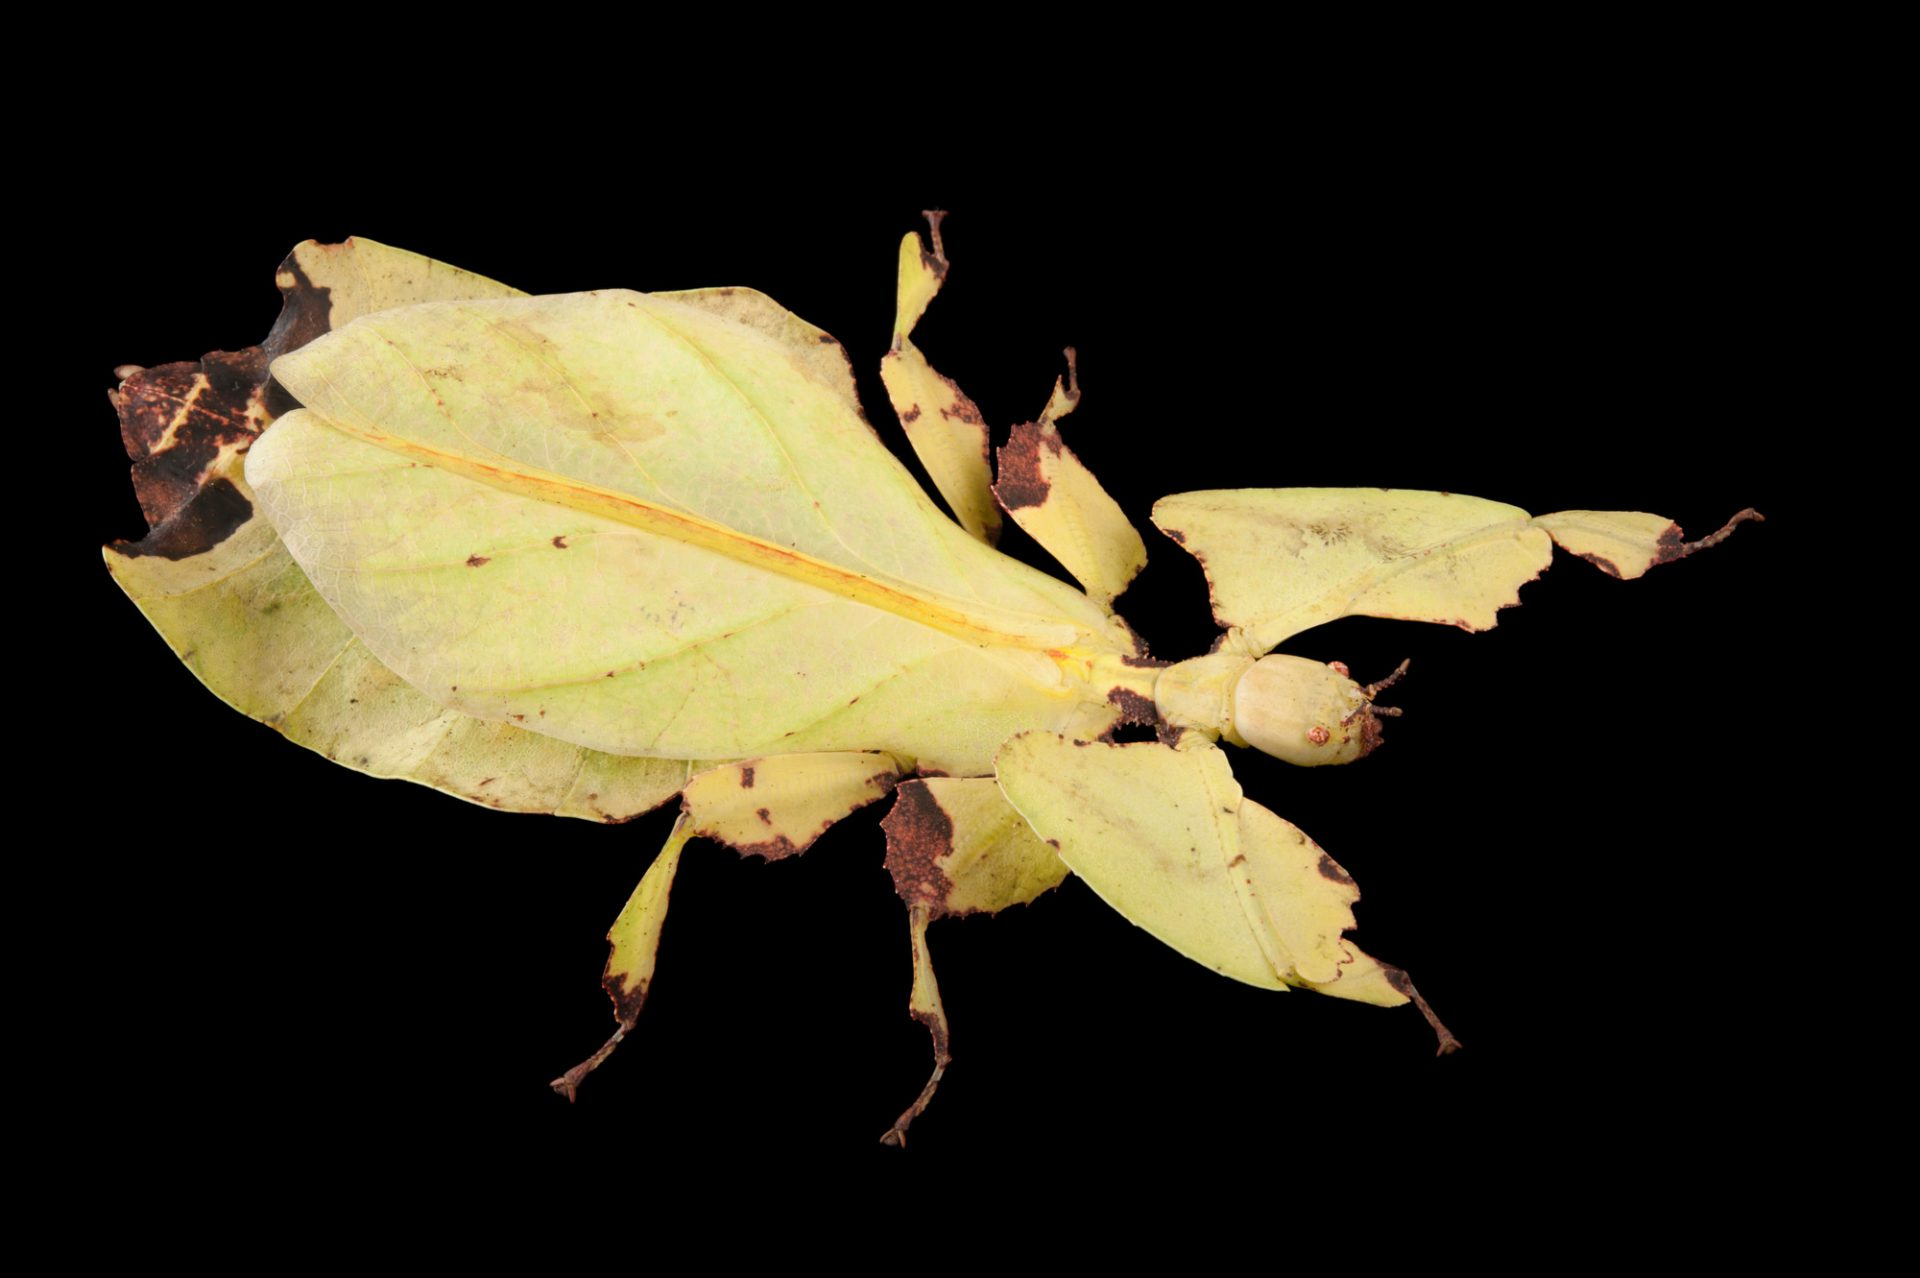 Photo: A walking leaf (Phyllium giganteum) at the Audubon Insectarium in New Orleans.